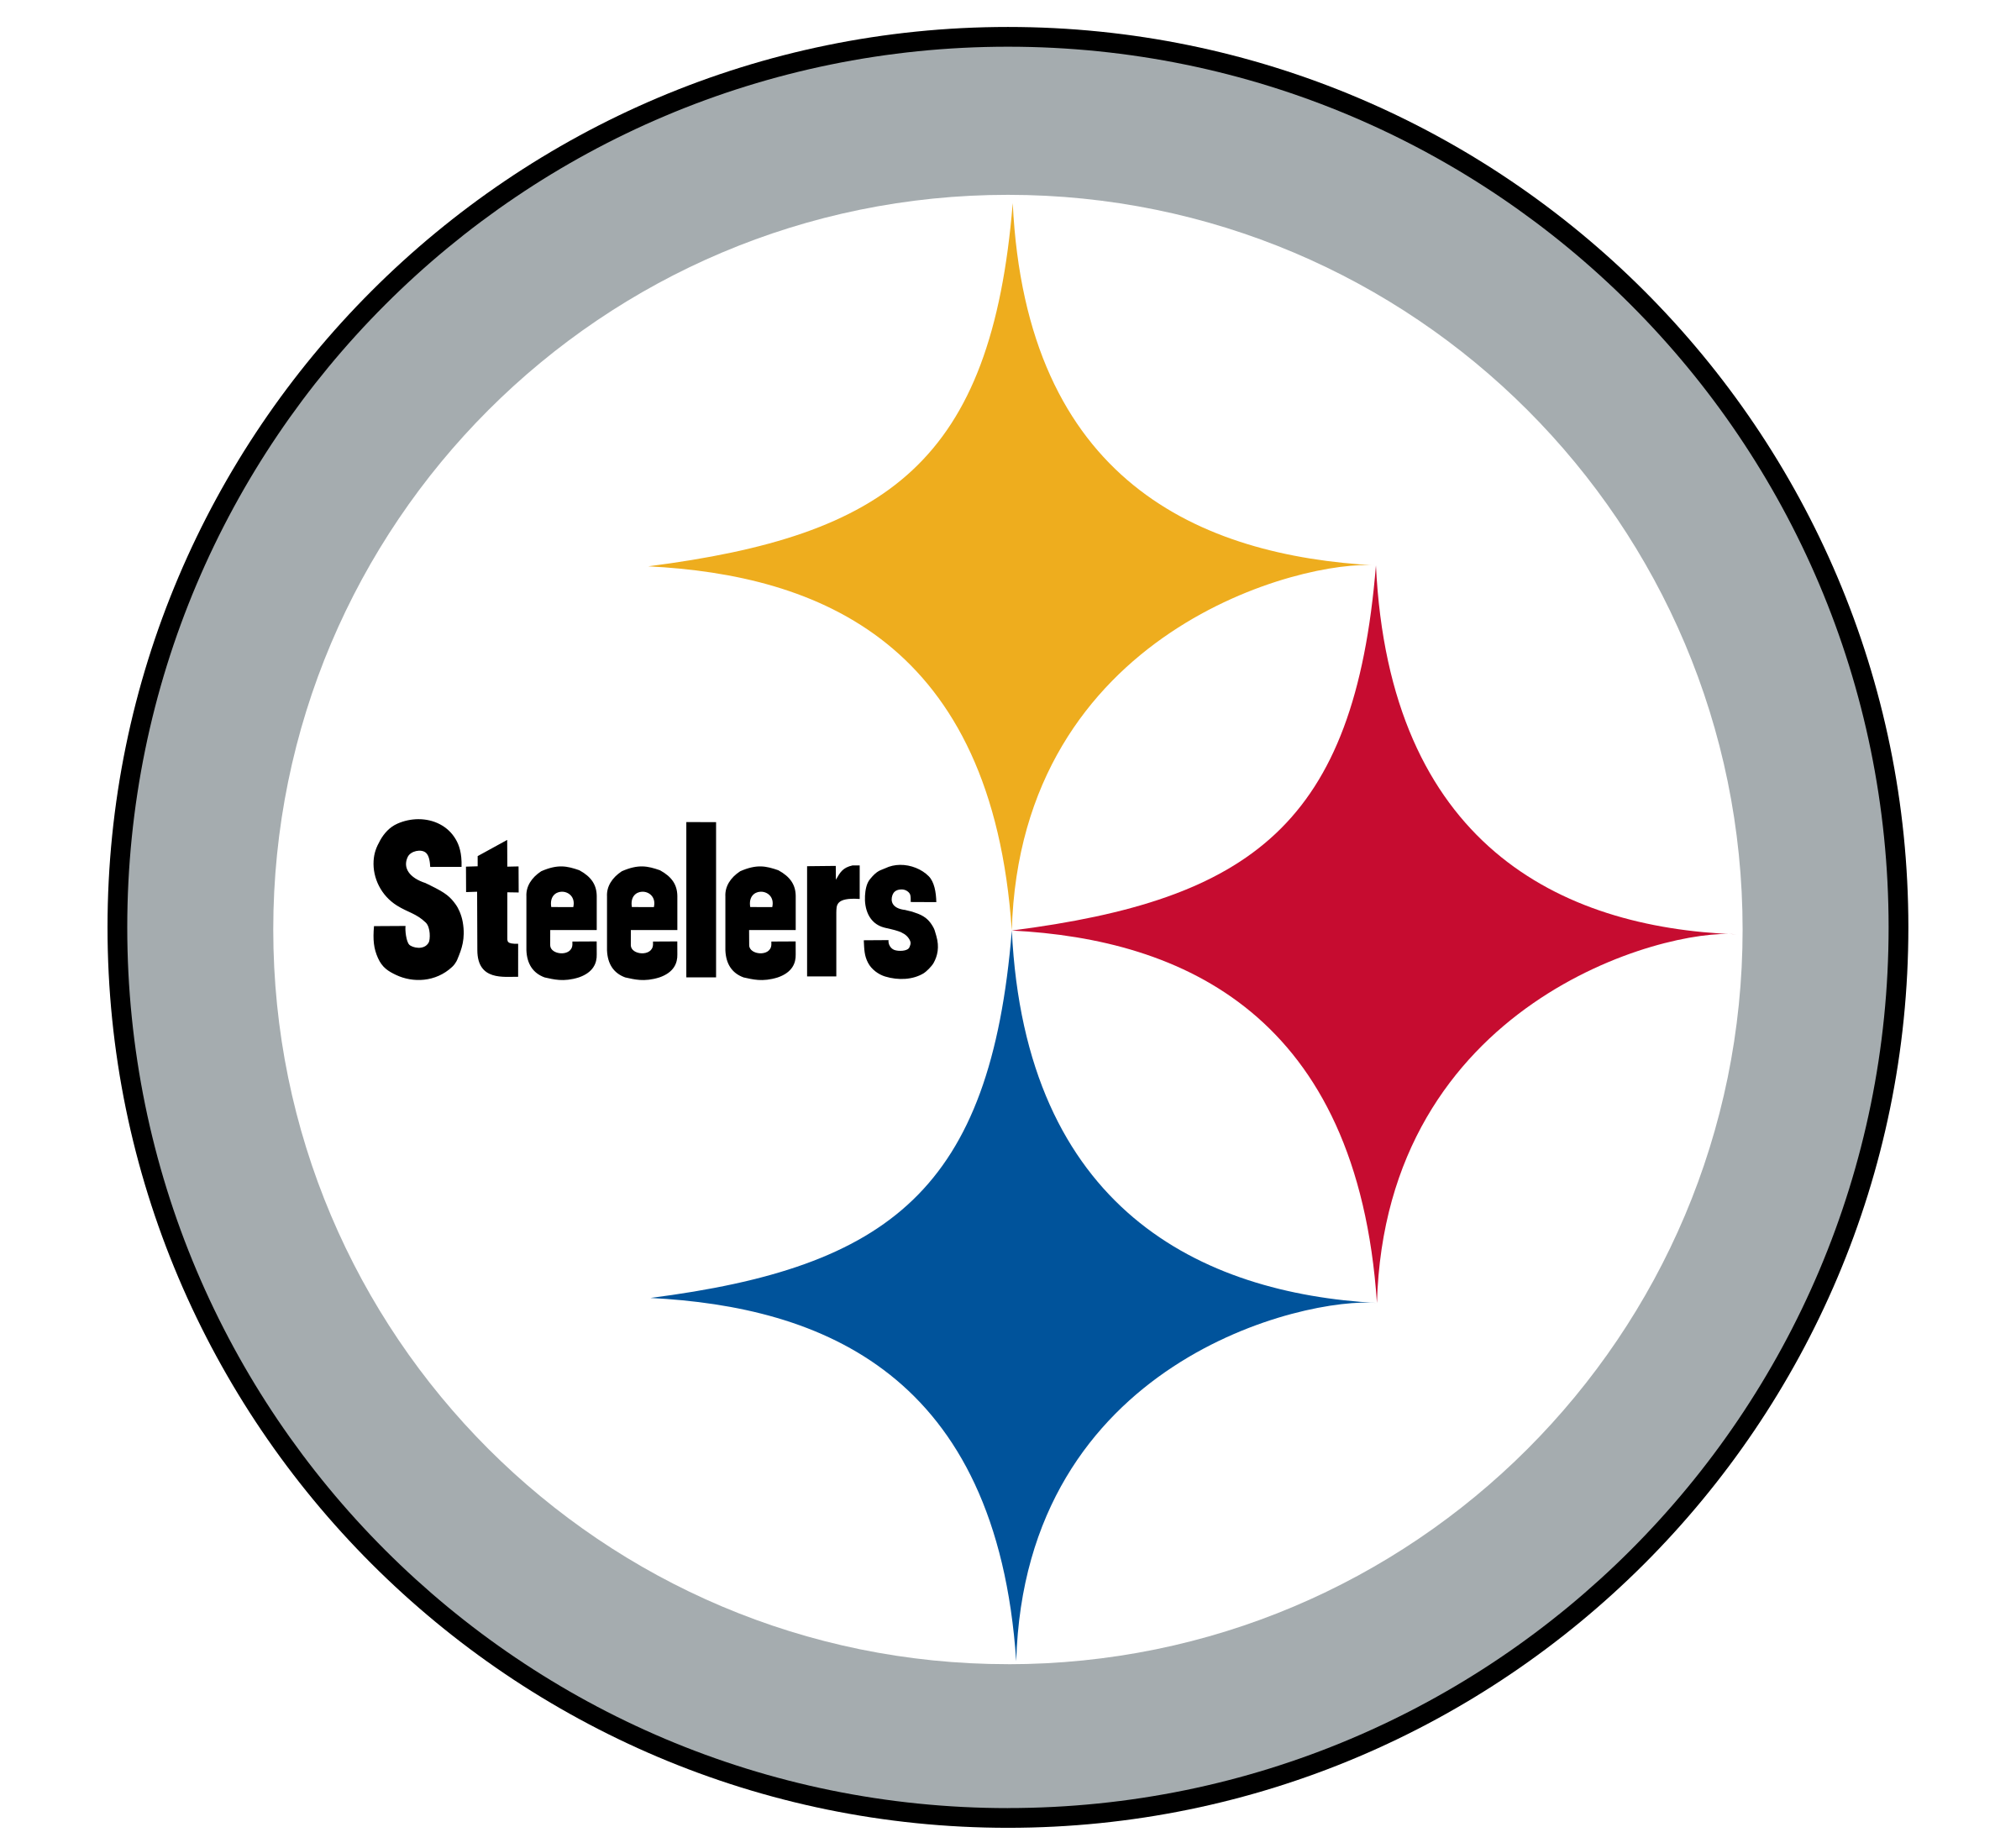 Steelers football helmet clipart vector library stock Pittsburgh Steelers Logo PNG Transparent & SVG Vector - Freebie Supply vector library stock